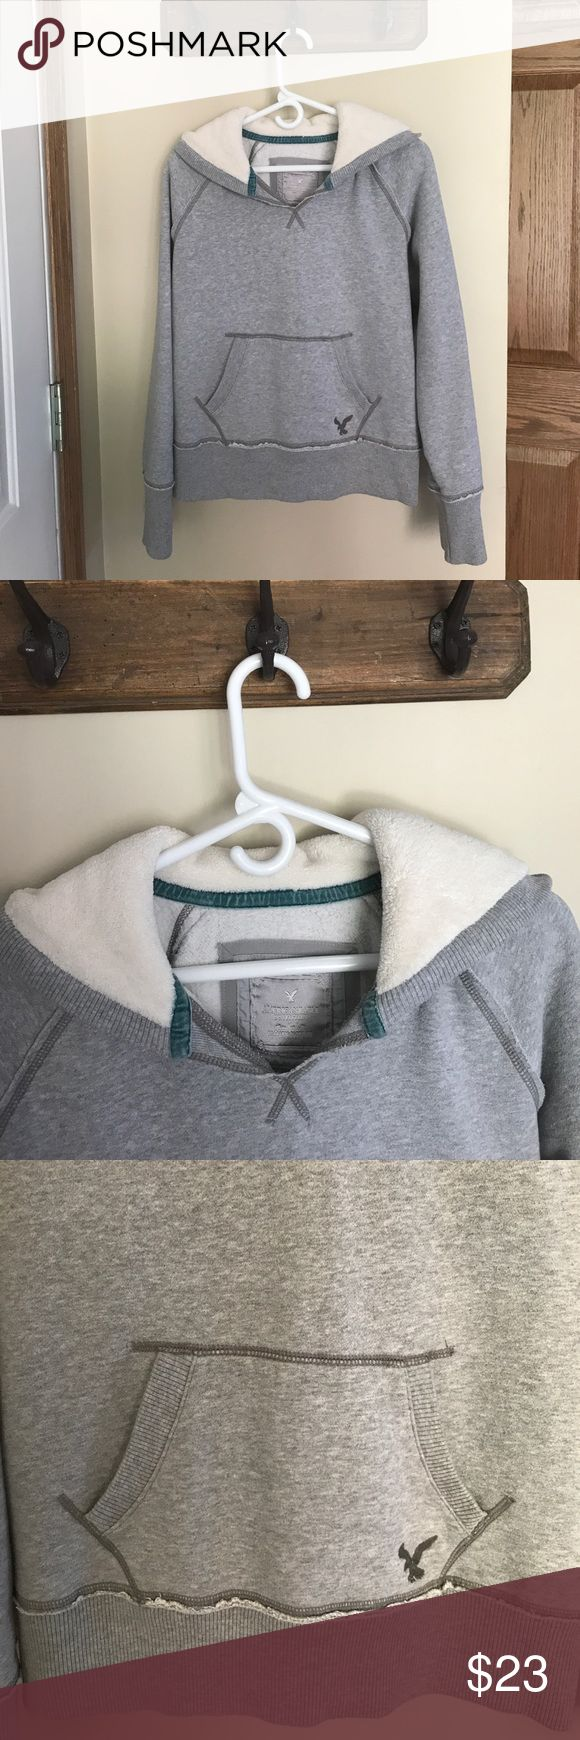 AMERICAN EAGLE OUTFITTERS Pullover Hoodie AMERICAN EAGLE OUTFITTERS Pullover hoodie.  Super cute and warm.  Hood is lined with soft material.  Pouch in front to keep hands warm or for storage.  Good condition no stains, holes or tears. American Eagle Outfitters Jackets & Coats